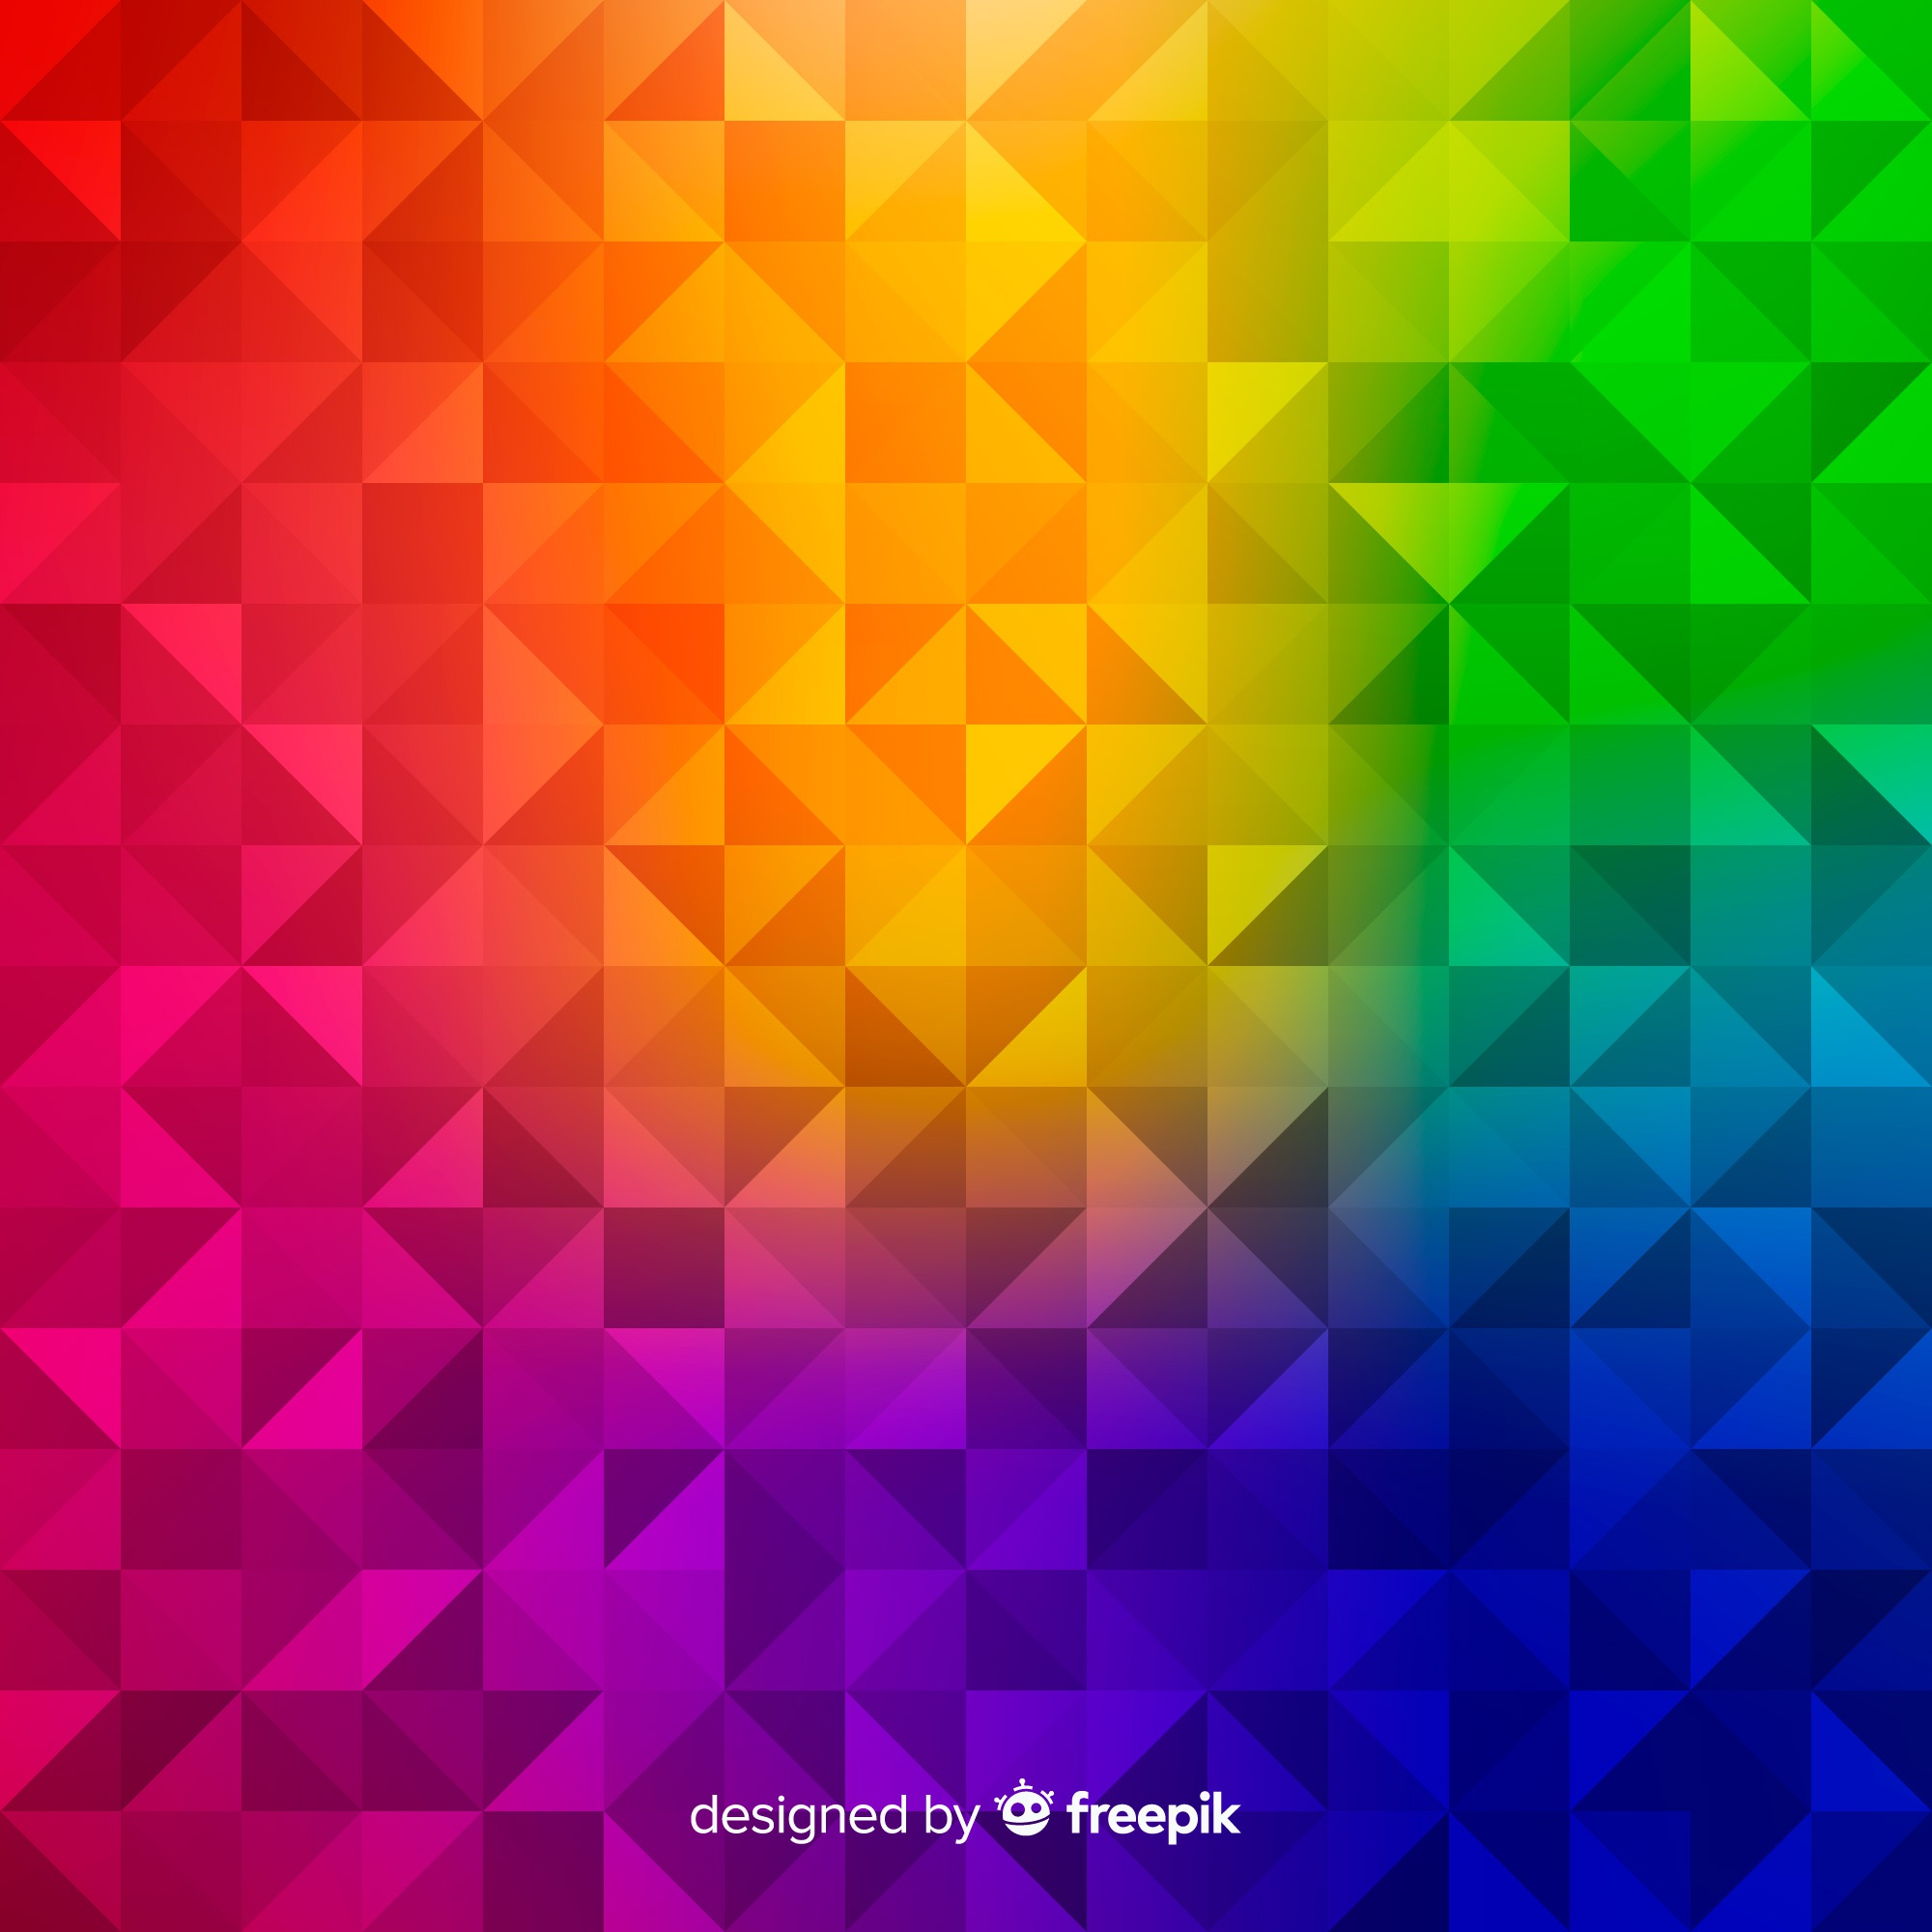 Multicolored modern abstract background with geometric shapes